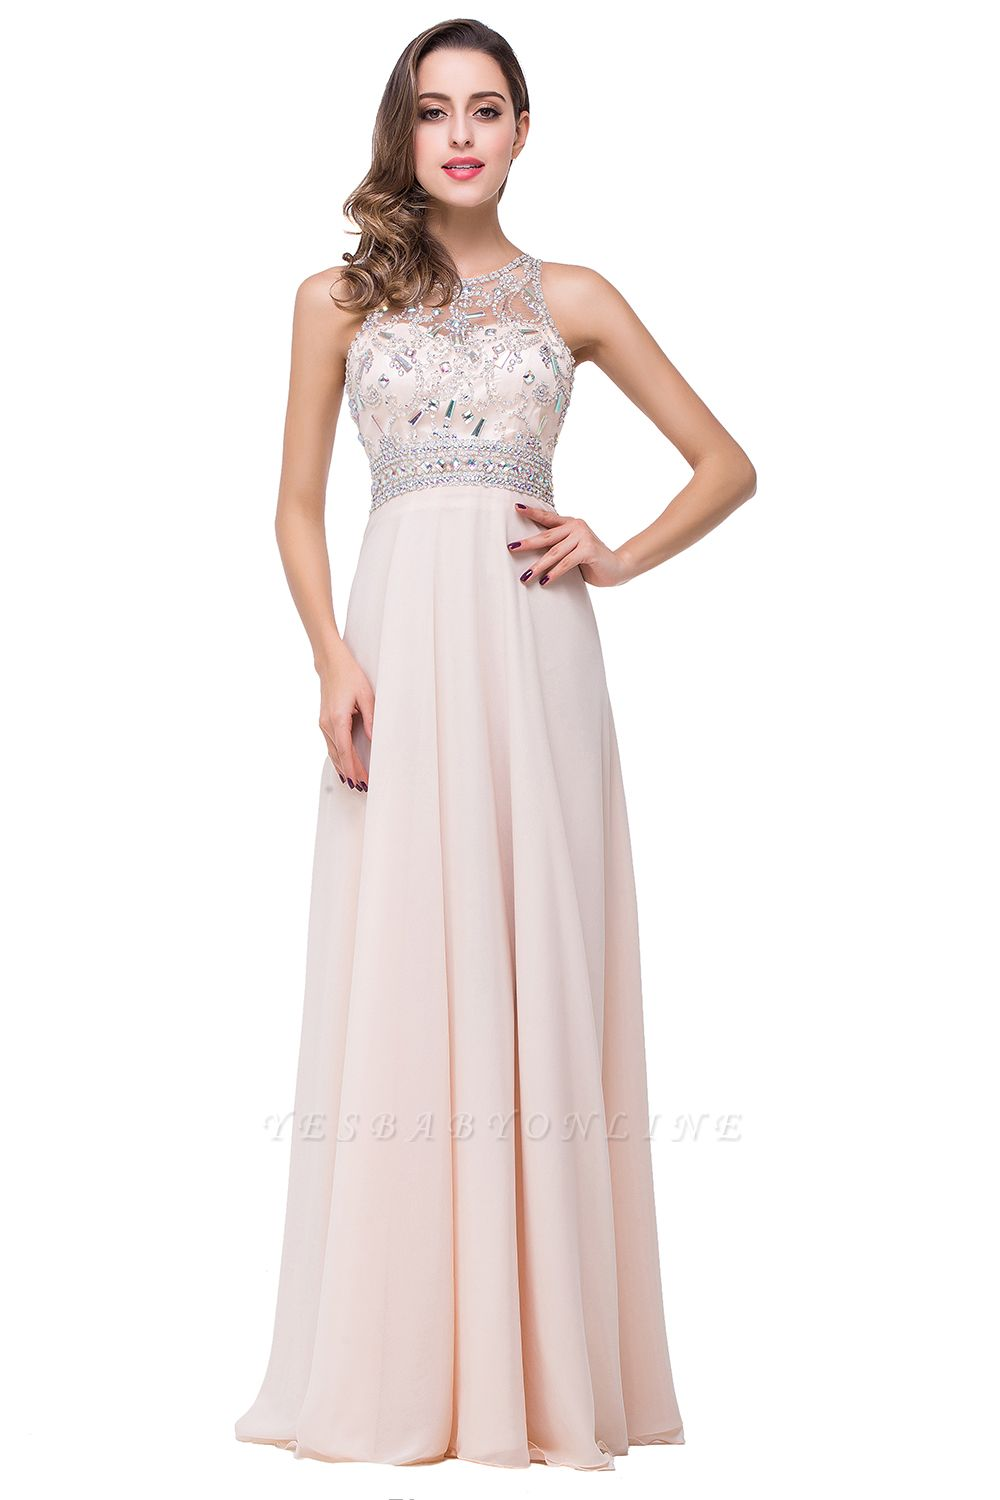 ADALYN | A-line Jewel Chiffon Prom Dress with Beading,Crystal